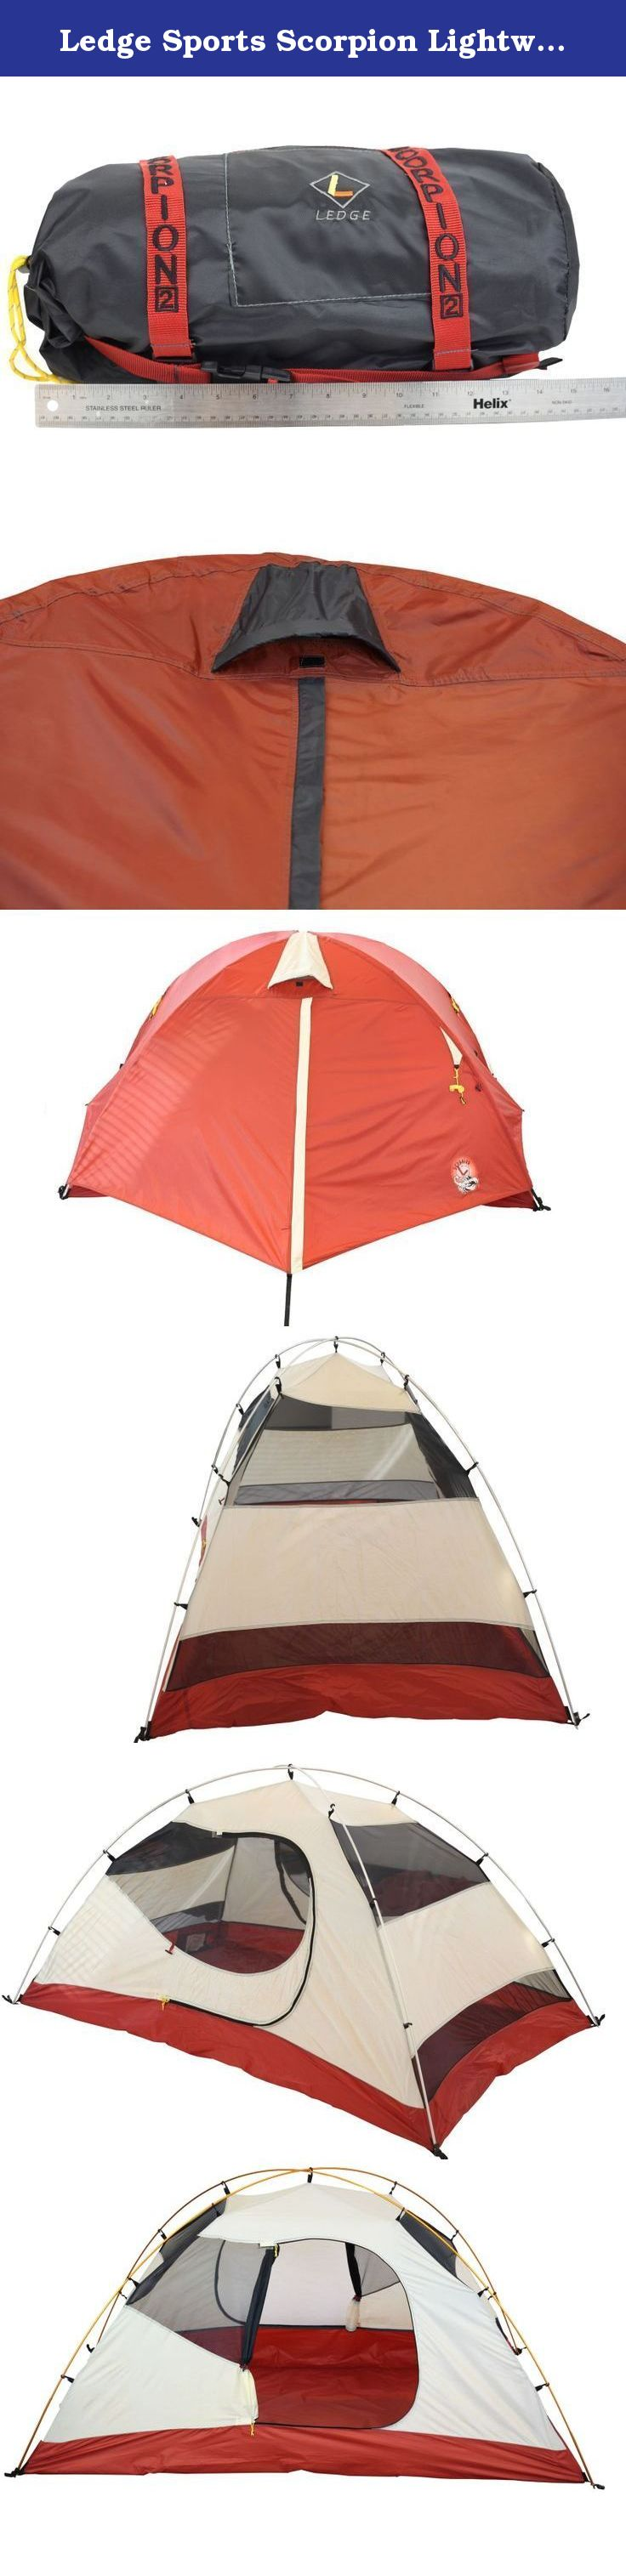 Ledge Sports Scorpion Lightweight 2 Person Tent (92 X 58 - 42-Inch Height  sc 1 st  Pinterest & Ledge Sports Scorpion Lightweight 2 Person Tent (92 X 58 - 42-Inch ...